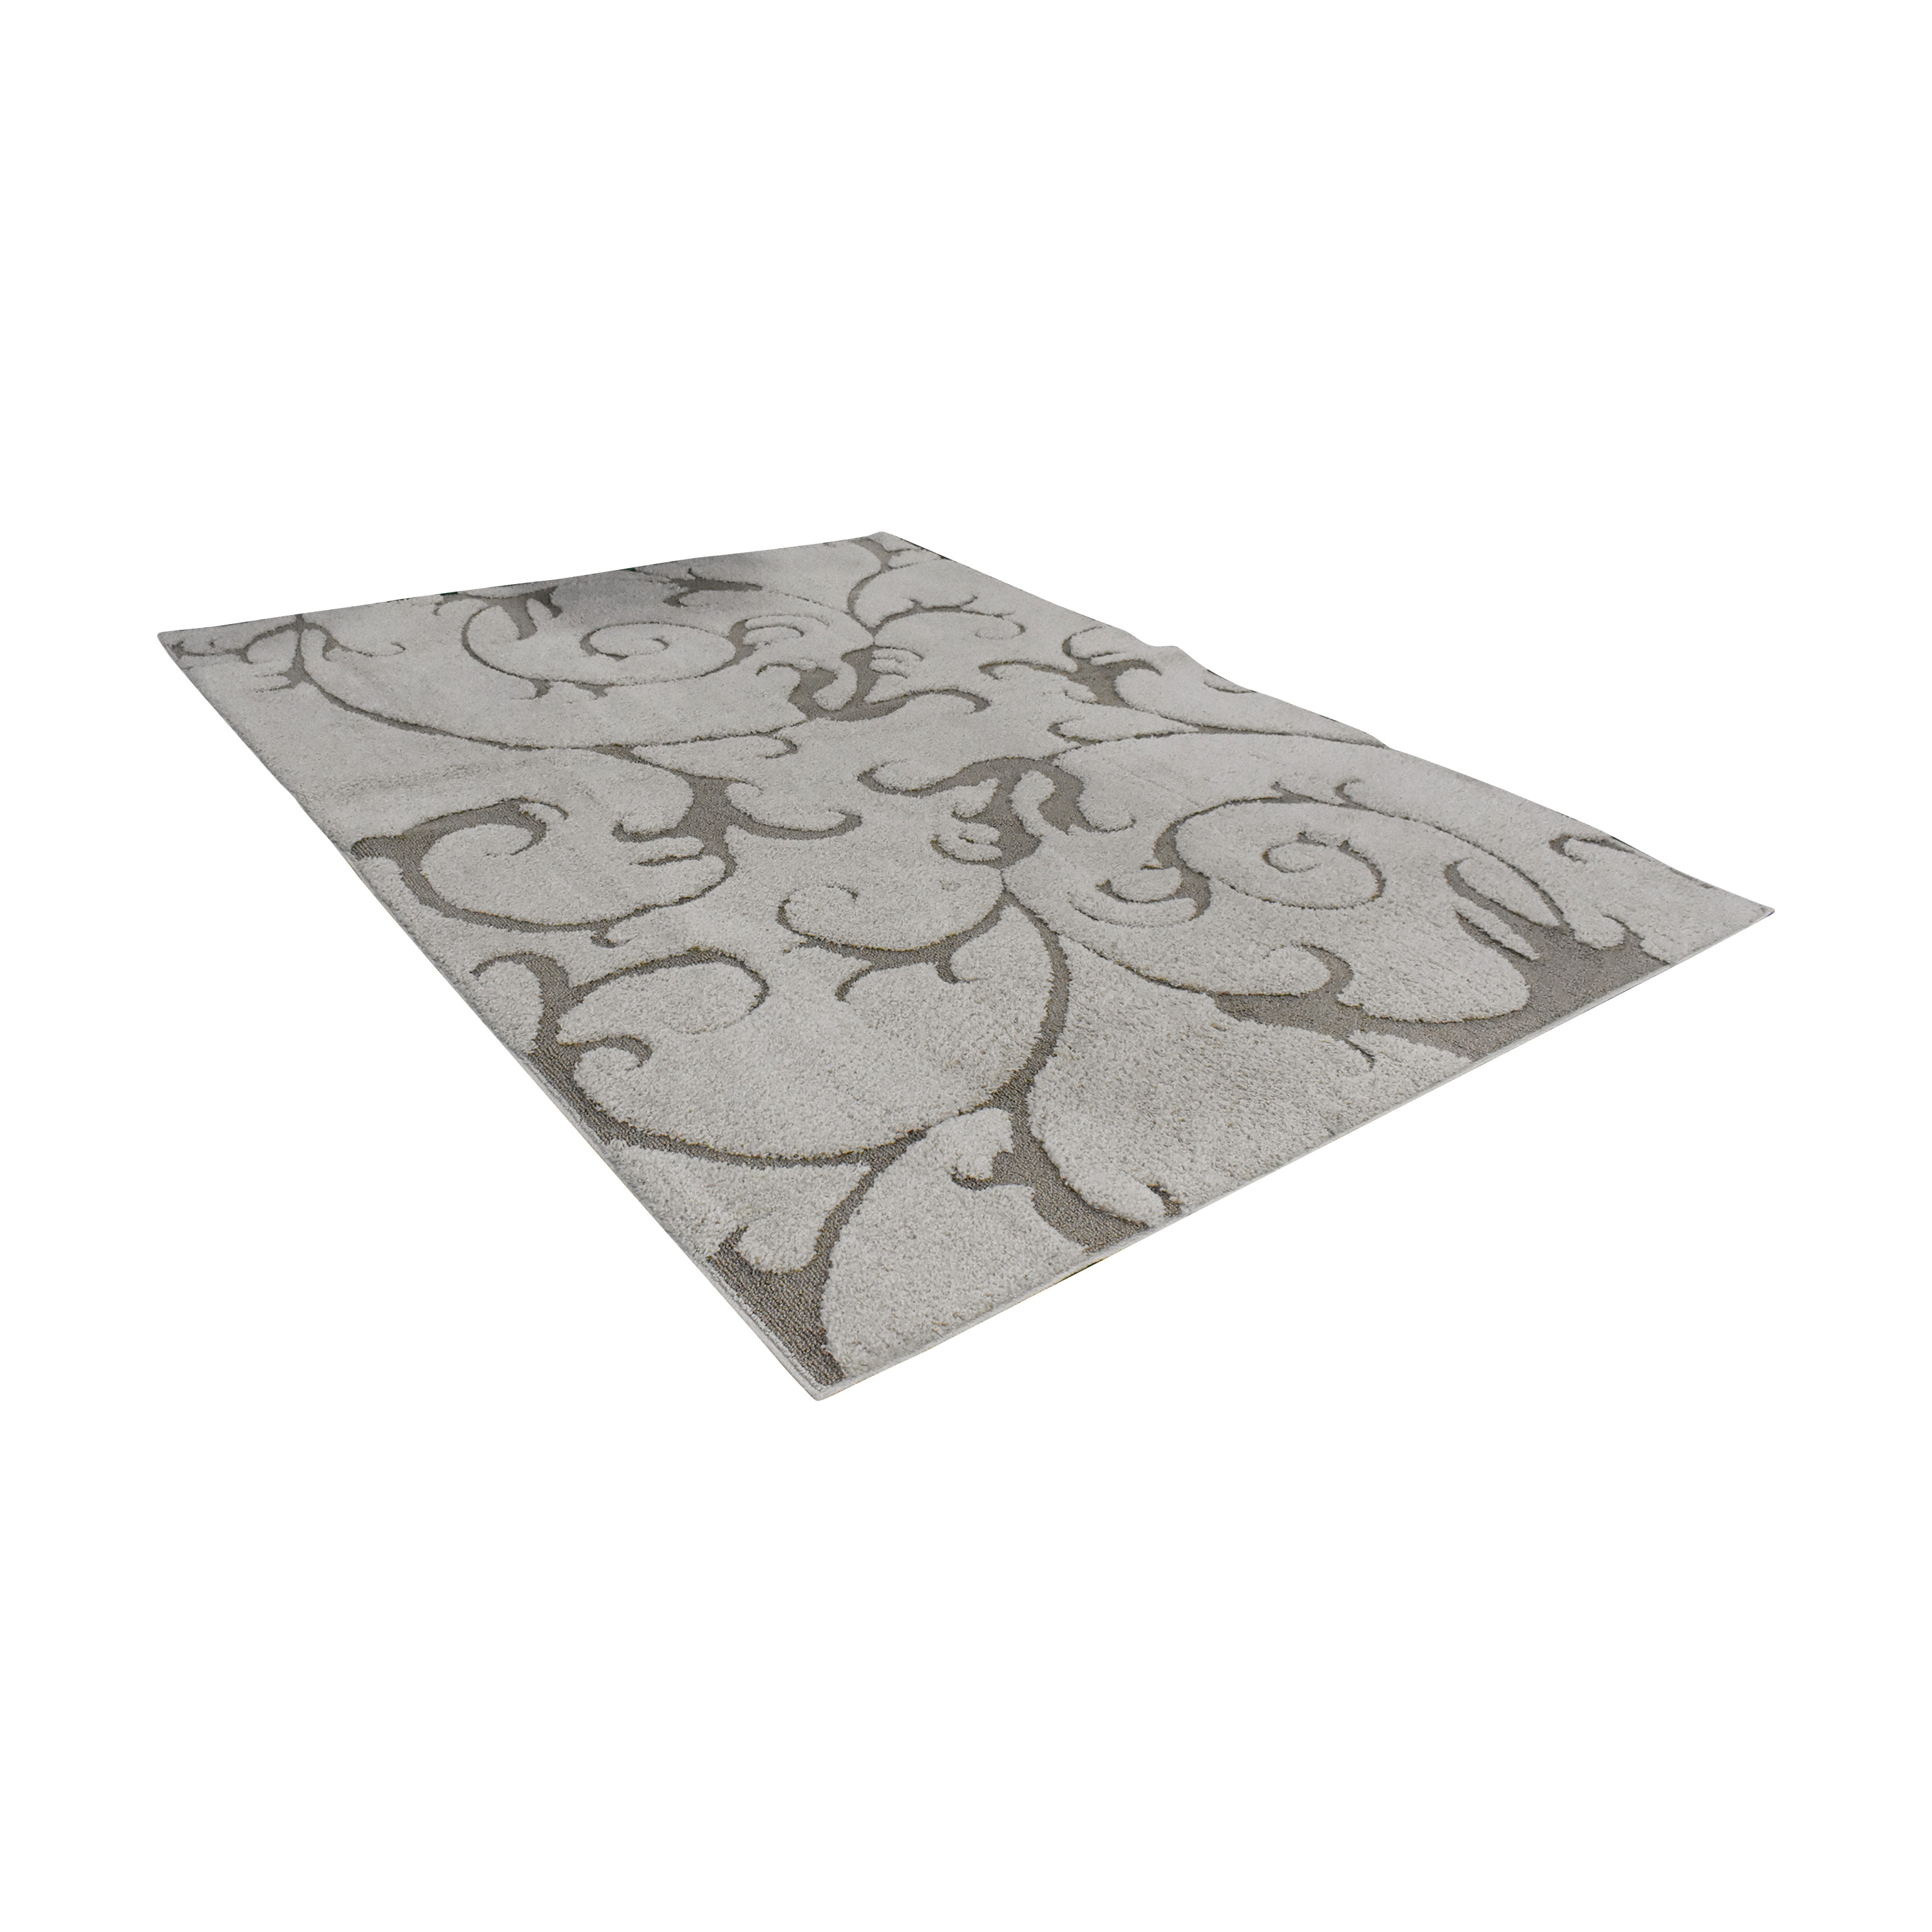 Canyon Furniture Patterned Area Rug / Decor